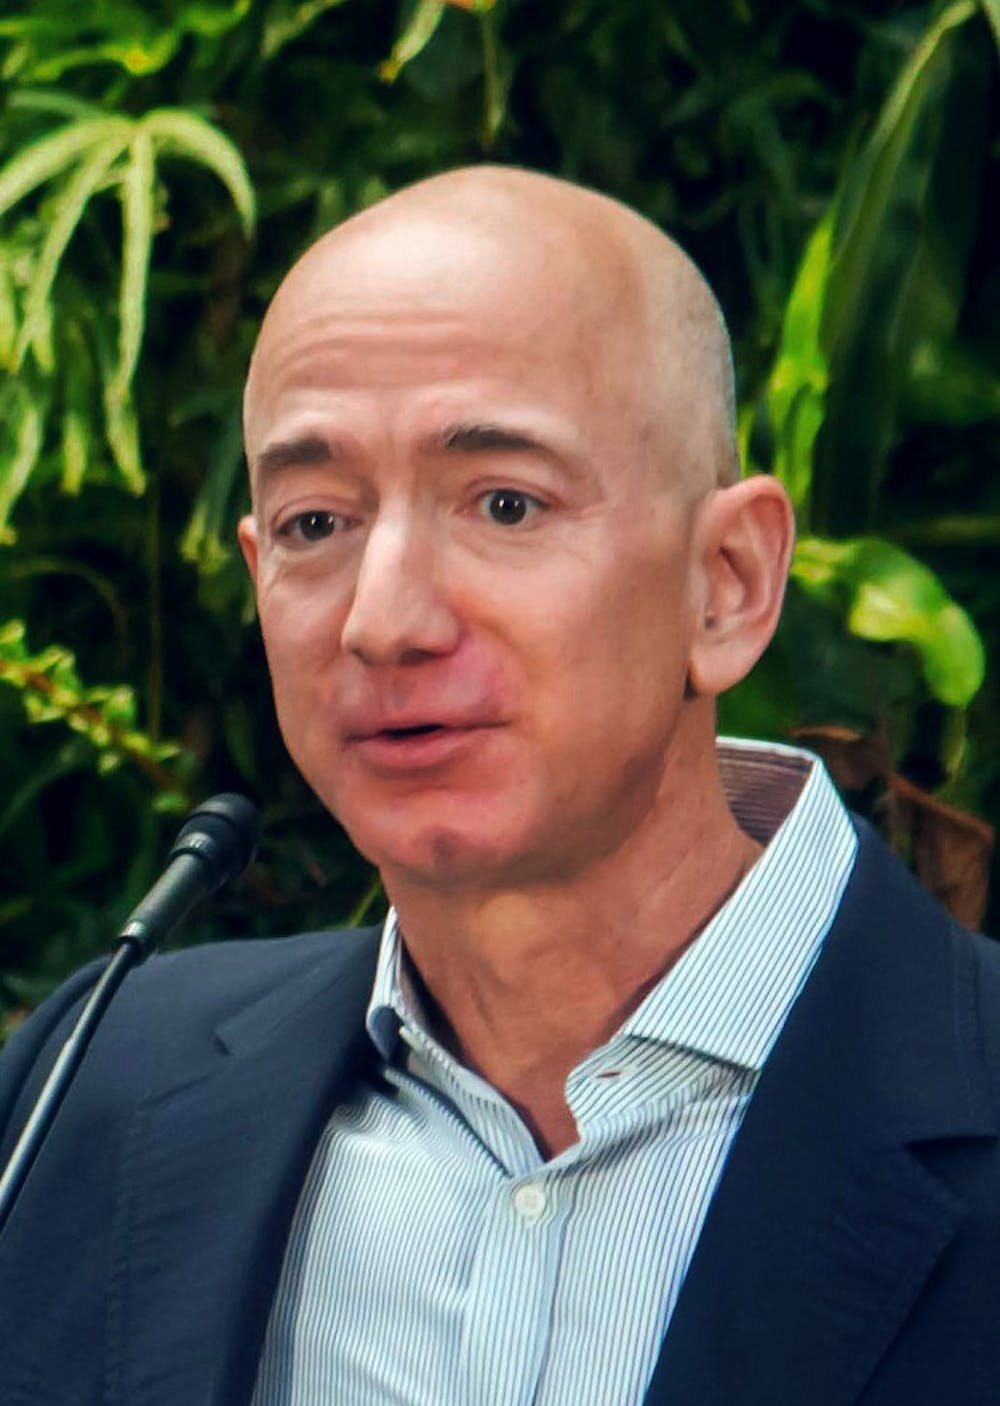 Jeff_Bezos_at_Amazon_Spheres_Grand_Opening_in_Seattle_-_2018_(39074799225)_(cropped).jpg